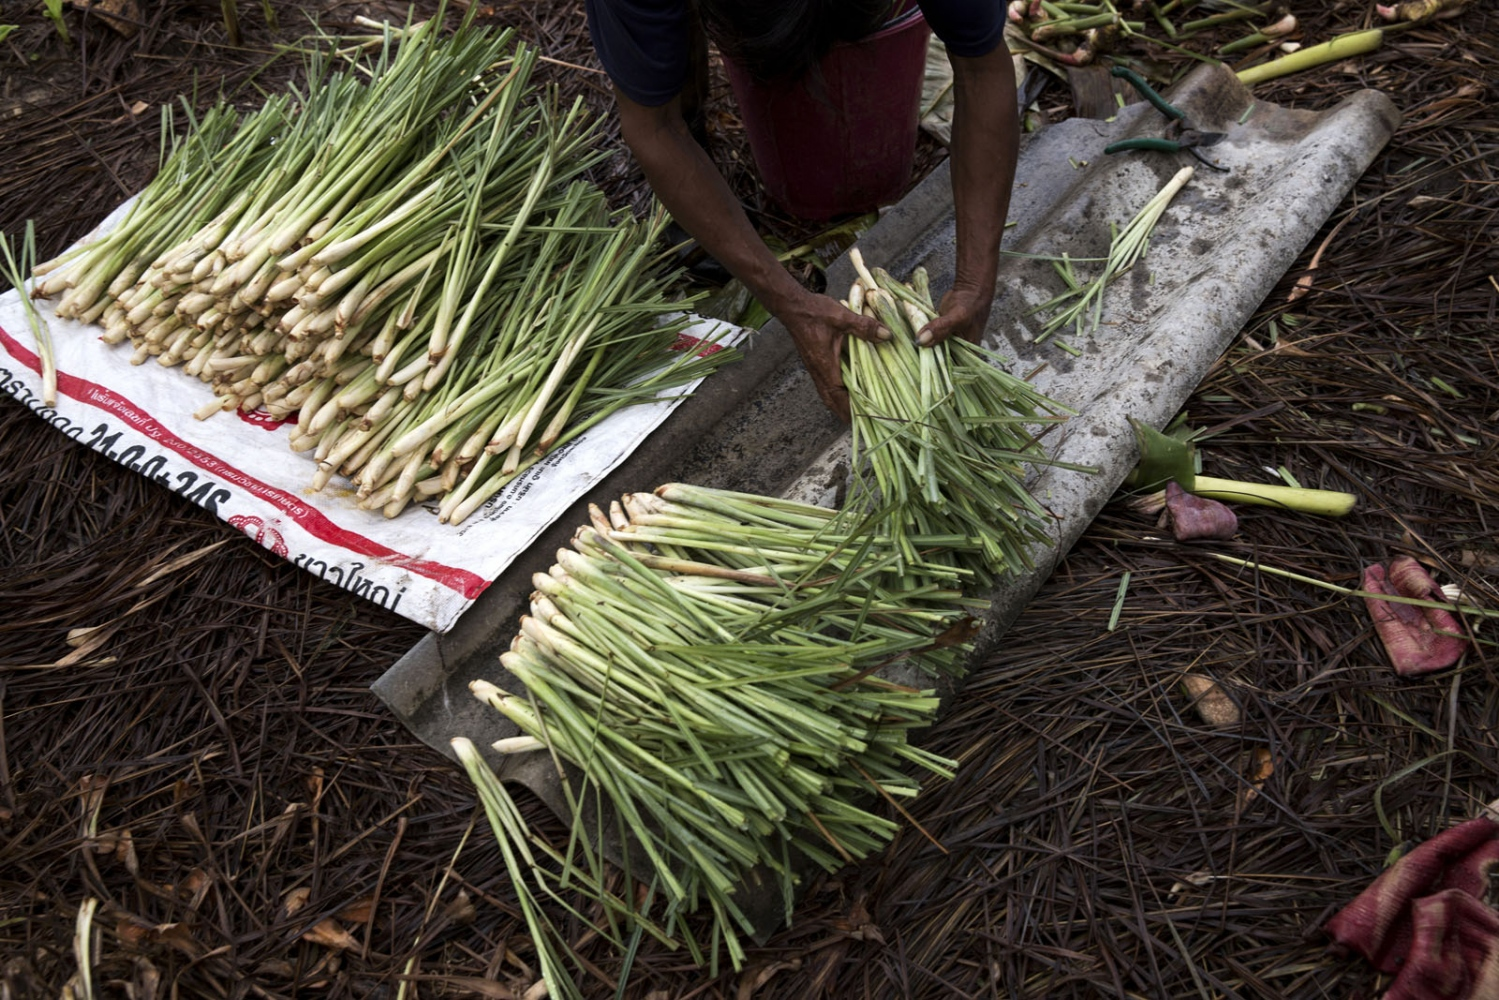 Recently harvested lemon grass is washed and packed ready to sell it at the market in the nearby town of Chaiburi.